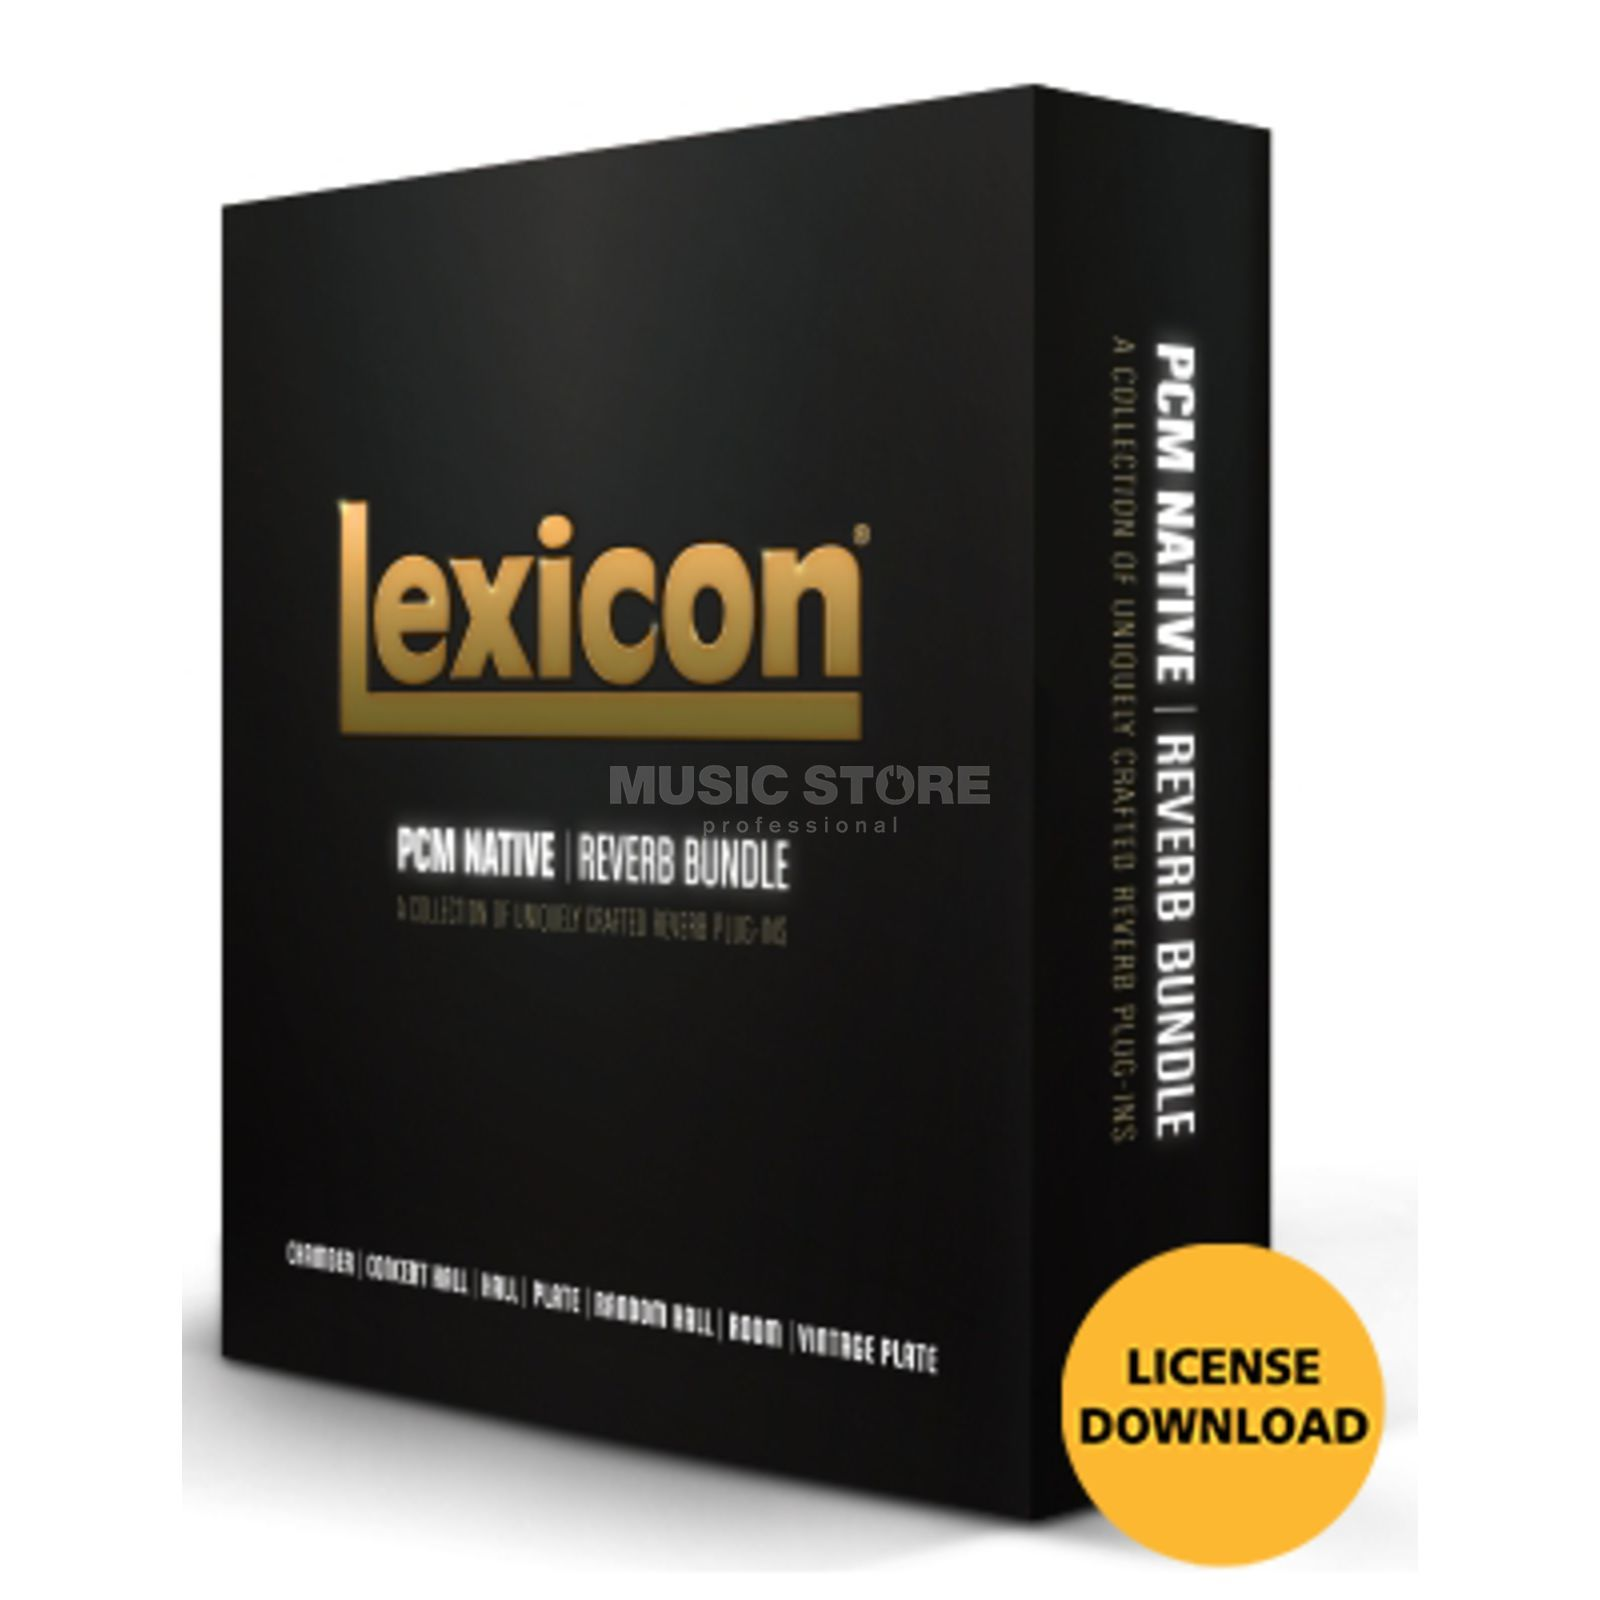 Lexicon PCM Native Reverb Bundle Plug In - Download license Produktbillede